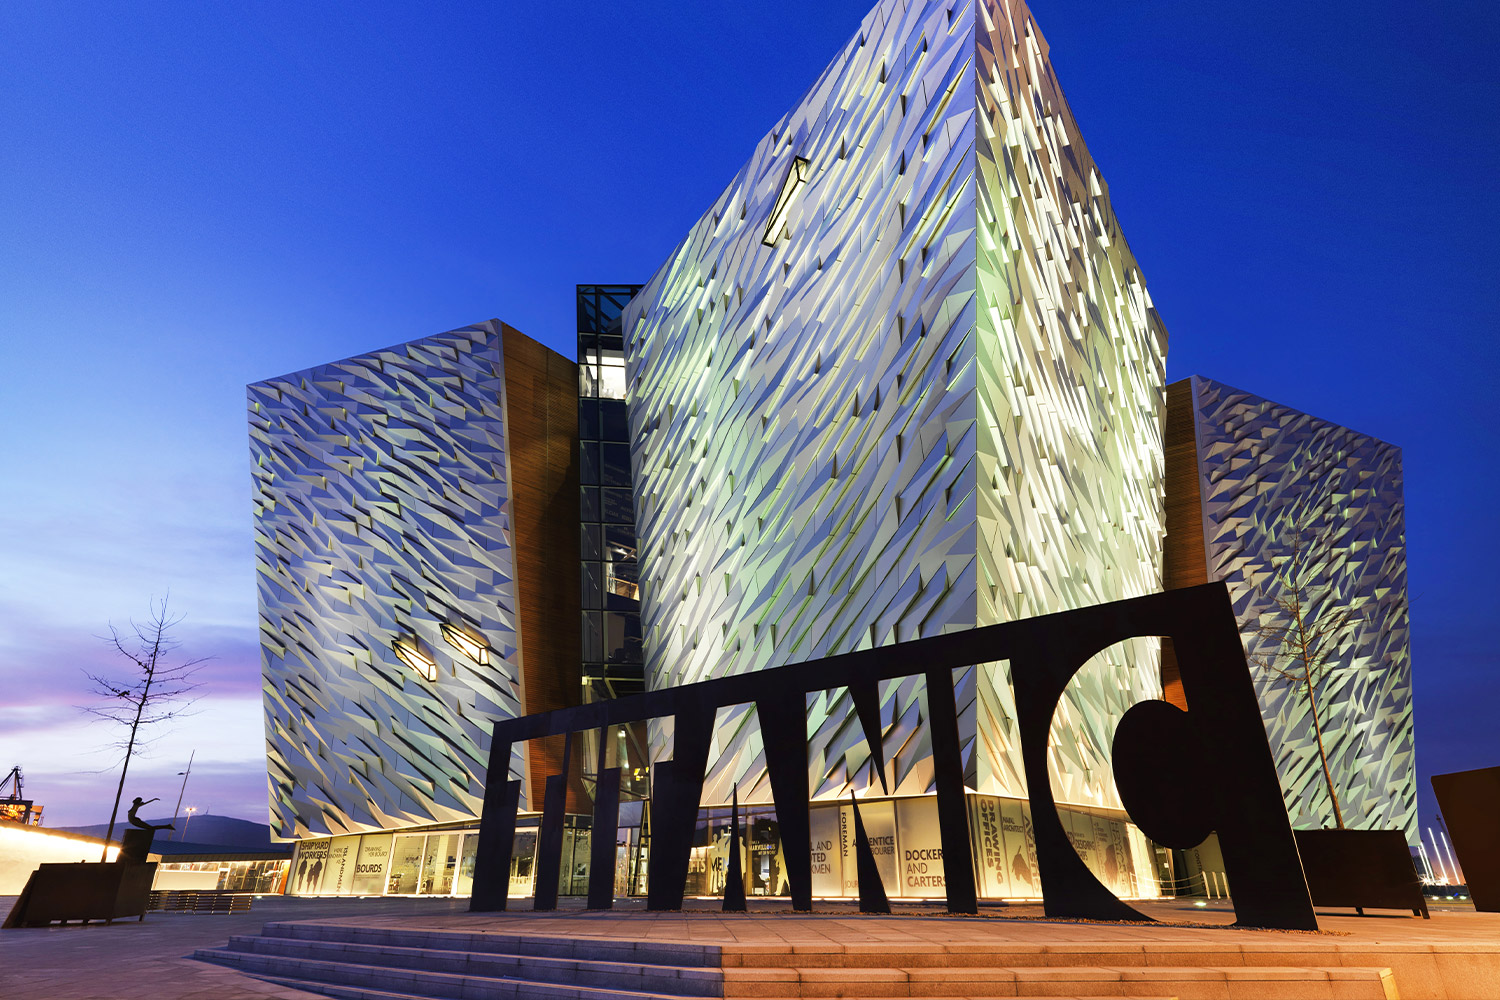 The Titanic Experience, Belfast, Northern Itreland